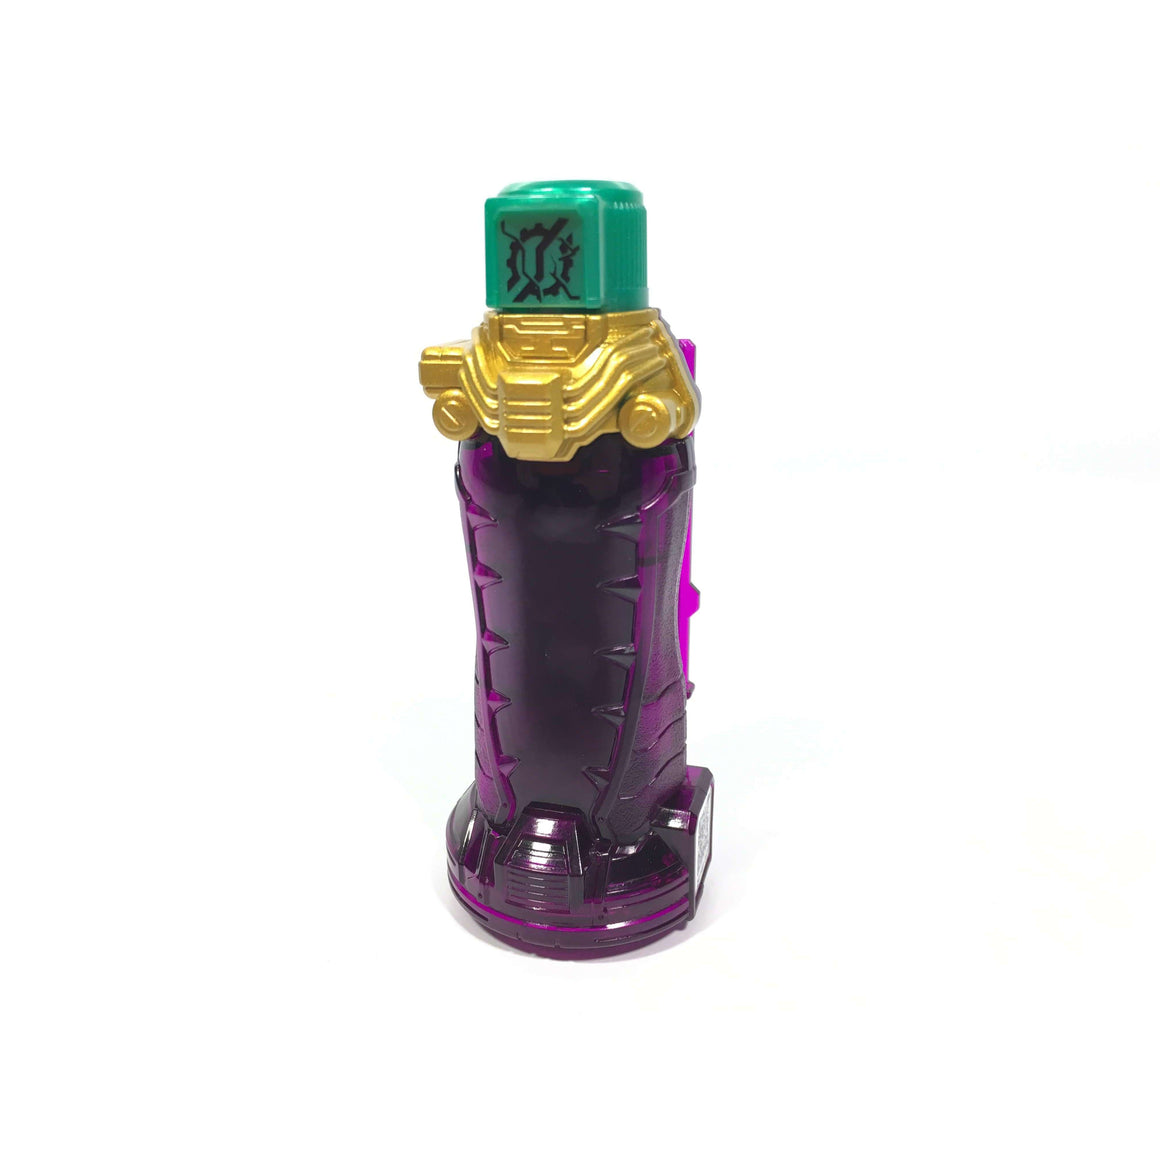 CSTOYS INTERNATIONAL:[LOOSE] Kamen Rider Build: DX Crocodile Crack Full Bottle